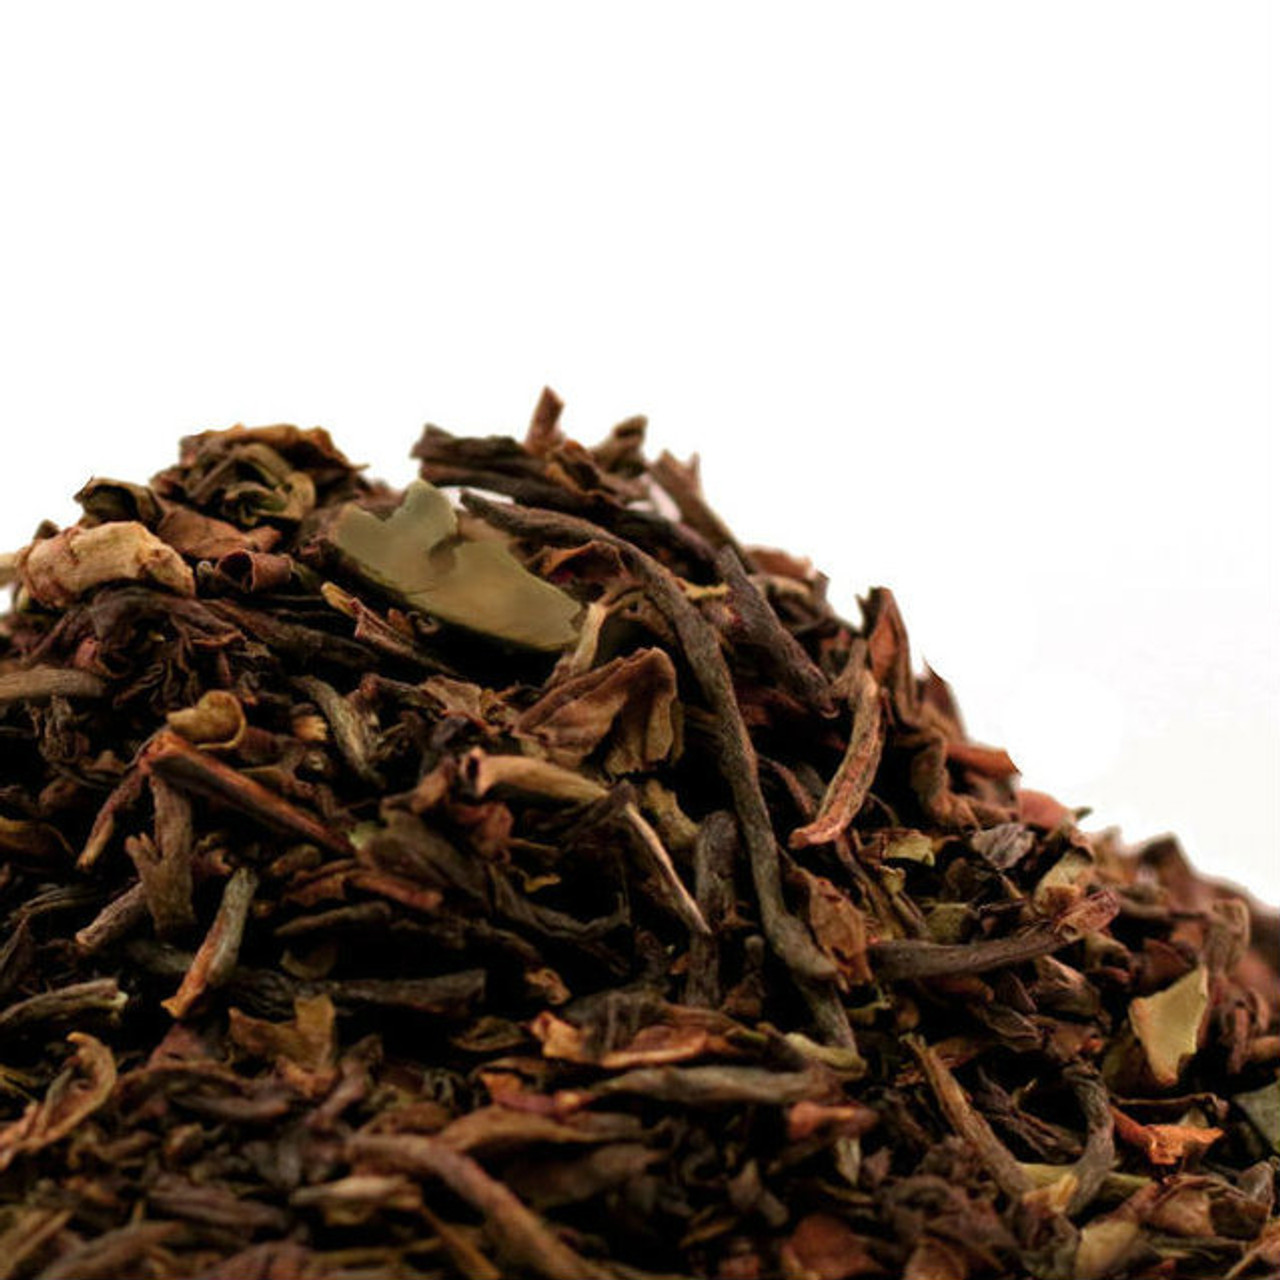 Although Jun Chiyabari is grown in Nepal, it is certain to delight even the most discerning Darjeeling connoisseur! The cup opens wide with the pointed muscatel bite of a Darjeeling, offset by soft round notes of wheat and moss grounded by good mouth filling astringency.  Steeps a beautiful bright and golden coppery cup. A heavenly delight from the Rooftop of the World.